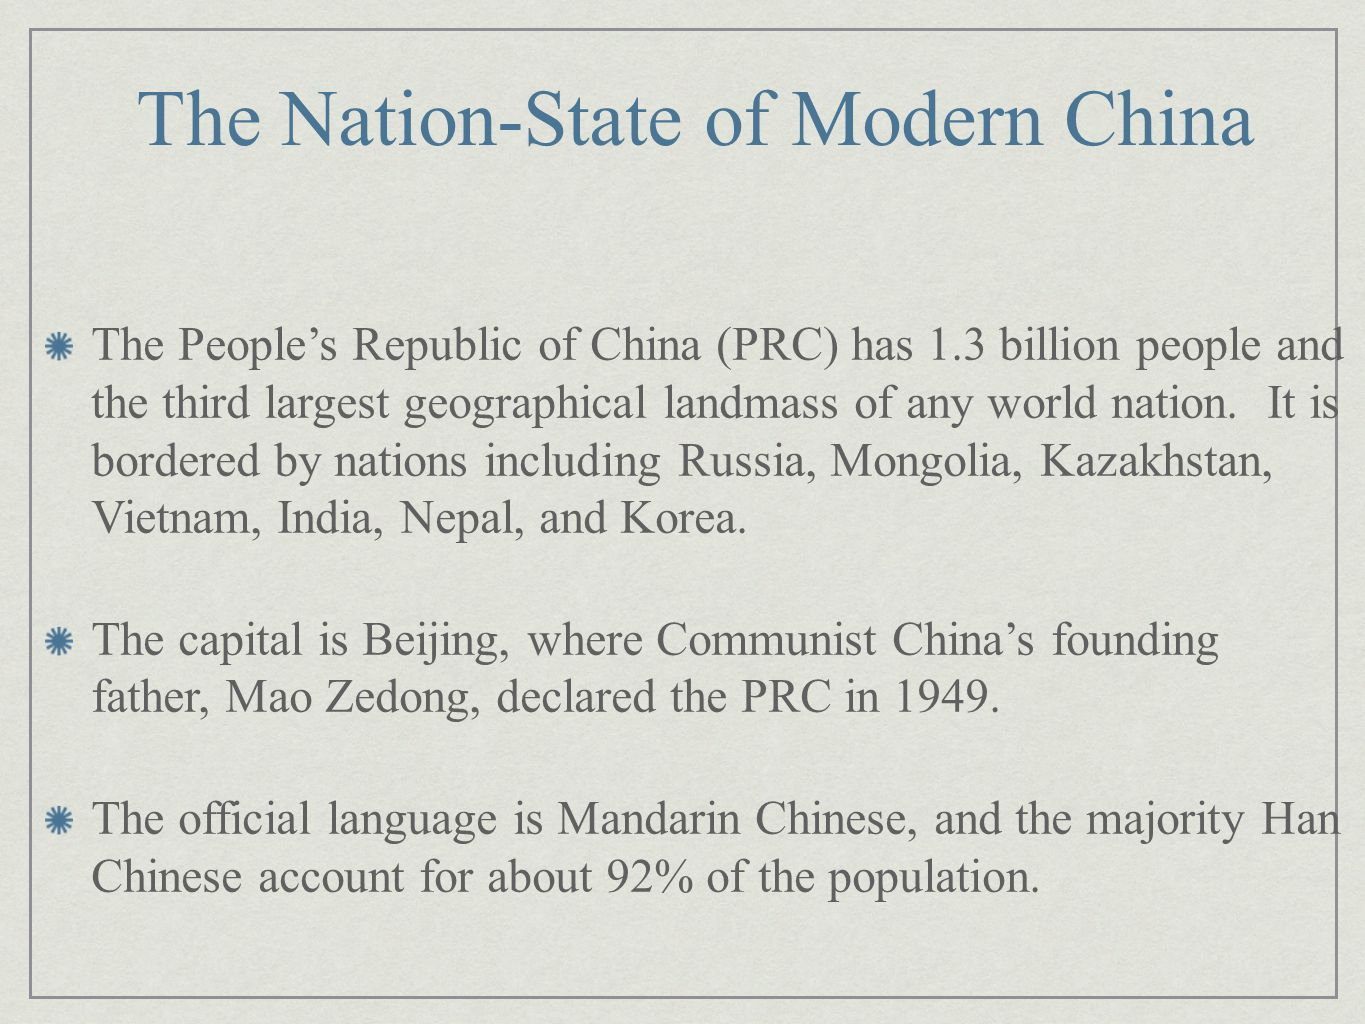 The Nation-State of Modern China